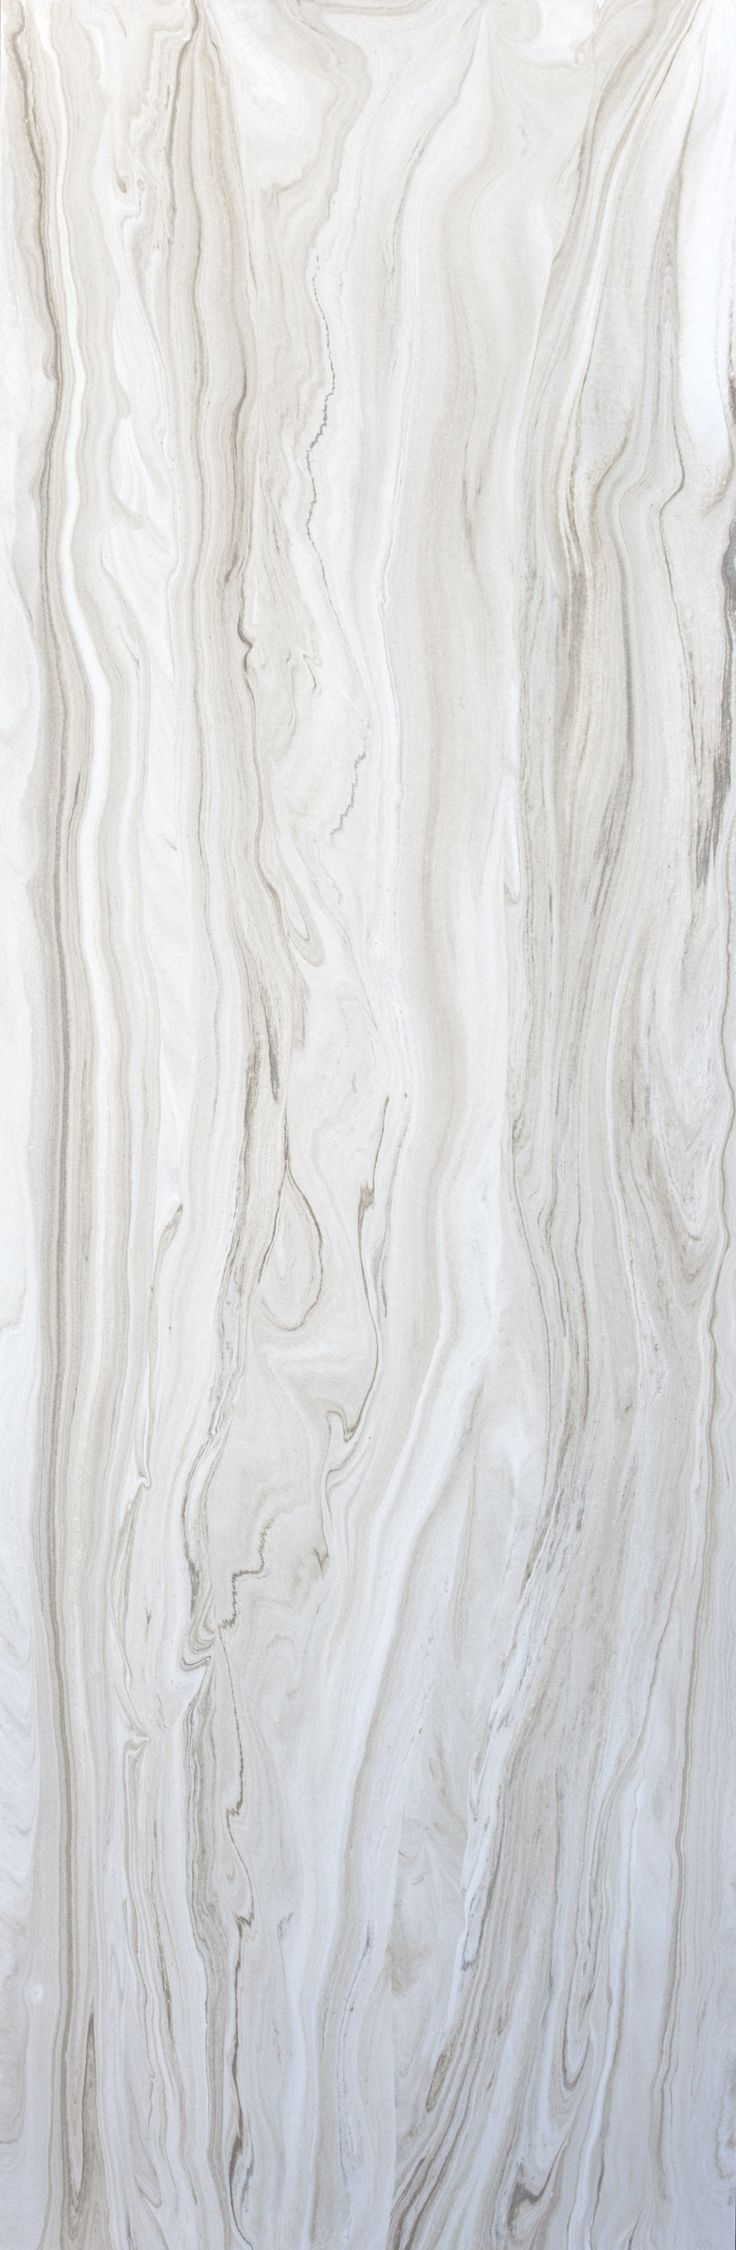 I love this wall panel design and its organic movement like a natural marble or stone!